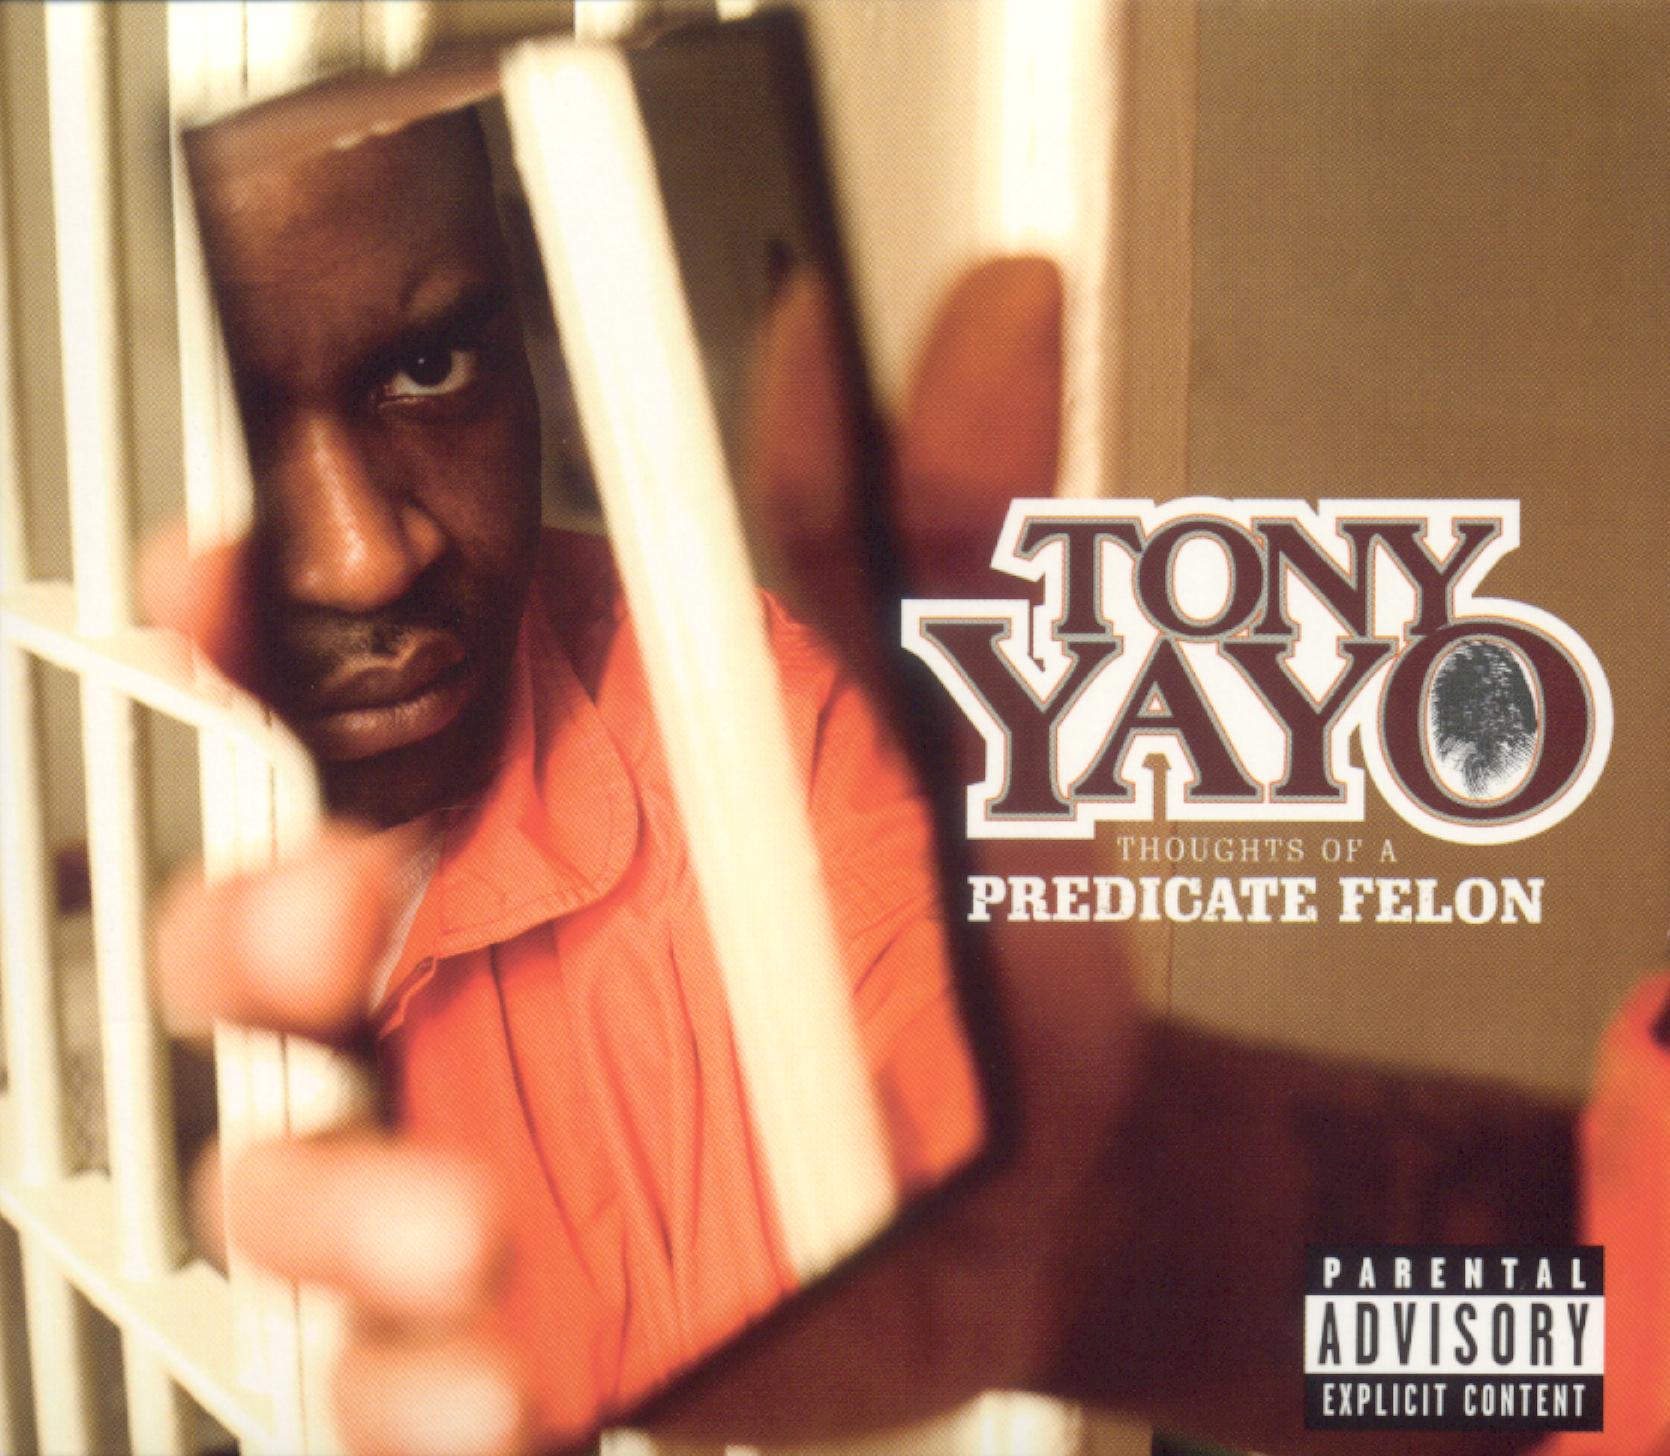 Tony Yayo: Thoughts of a Predicate Felon